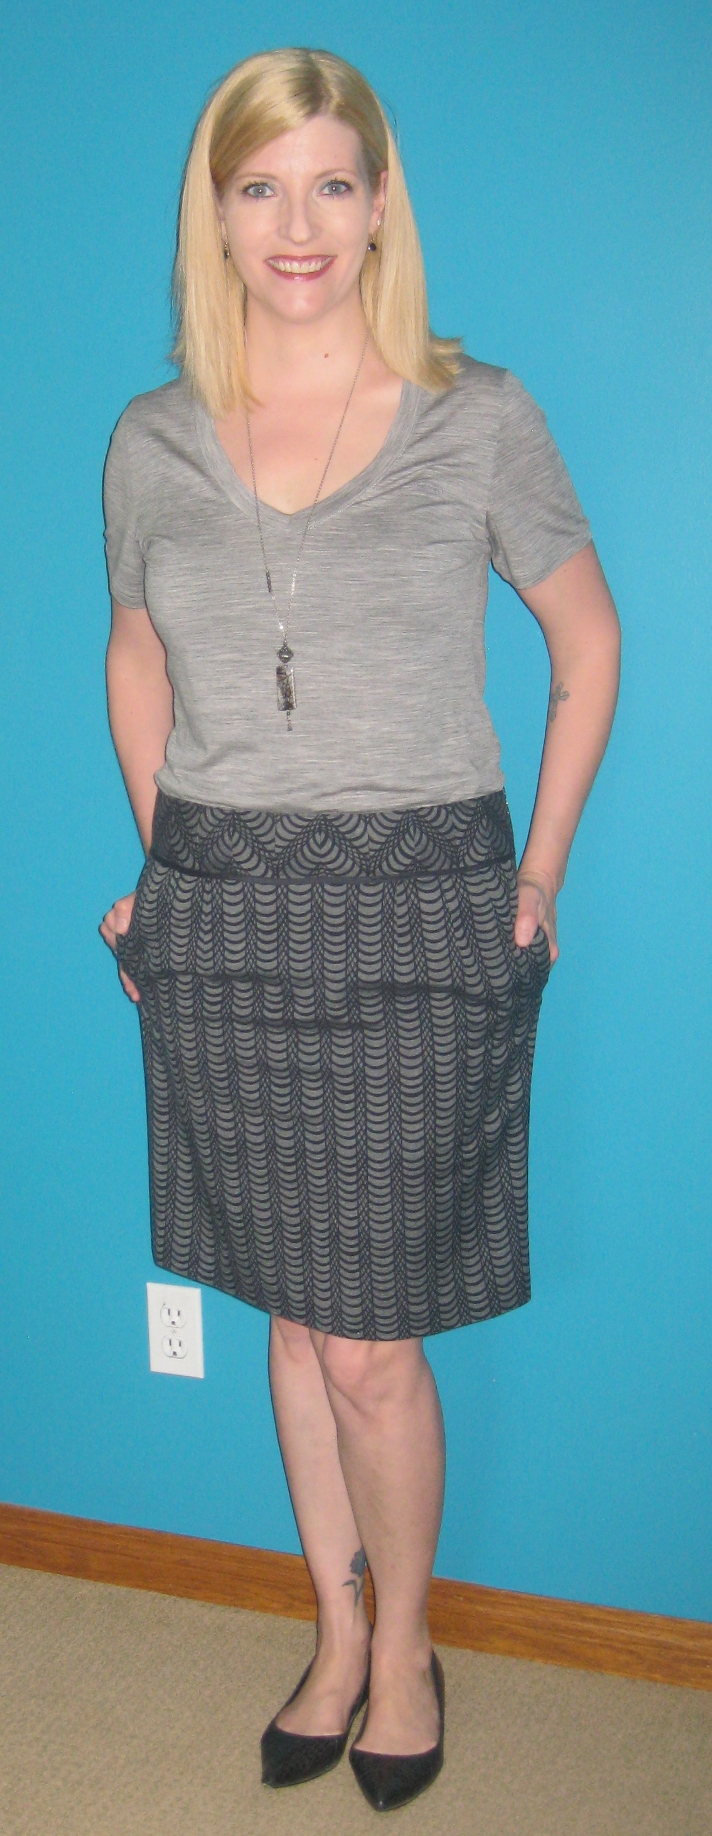 Ice Breaker grey tee from my closet, Club Monaco skirt $7.70, pointy flats $7 plus She Does Create pendant.